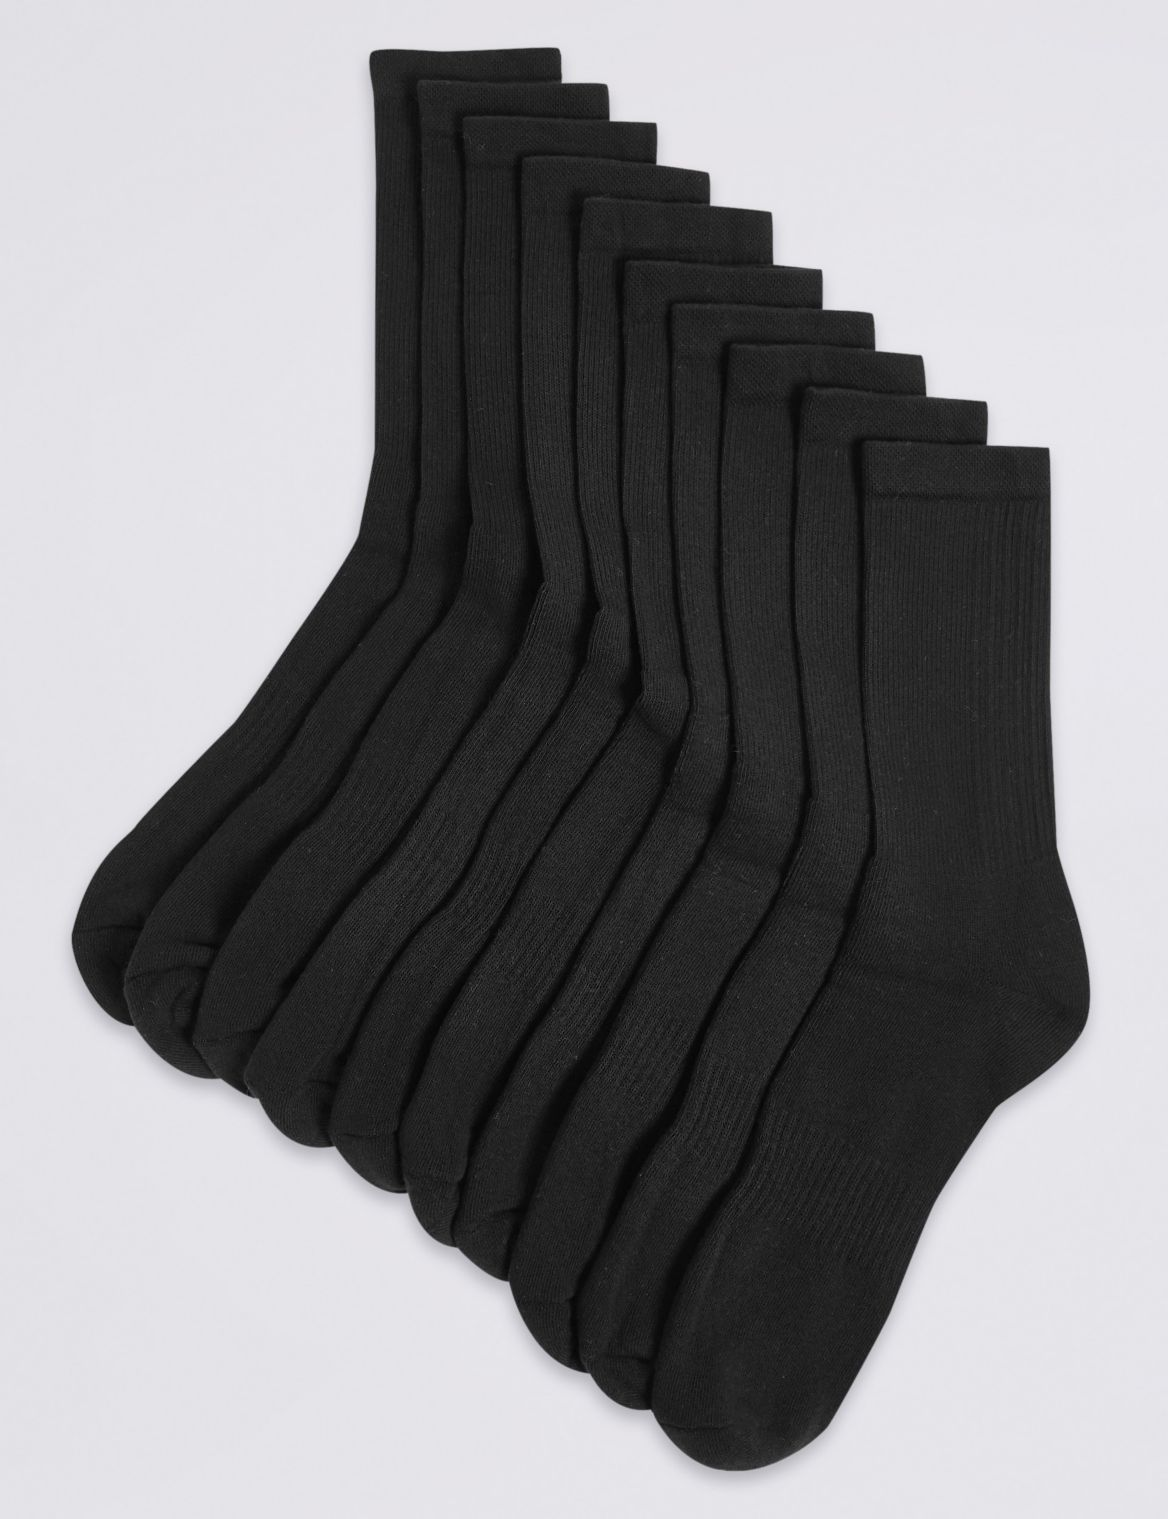 10 Pack Cool & Freshfeet™ Sports Socks black